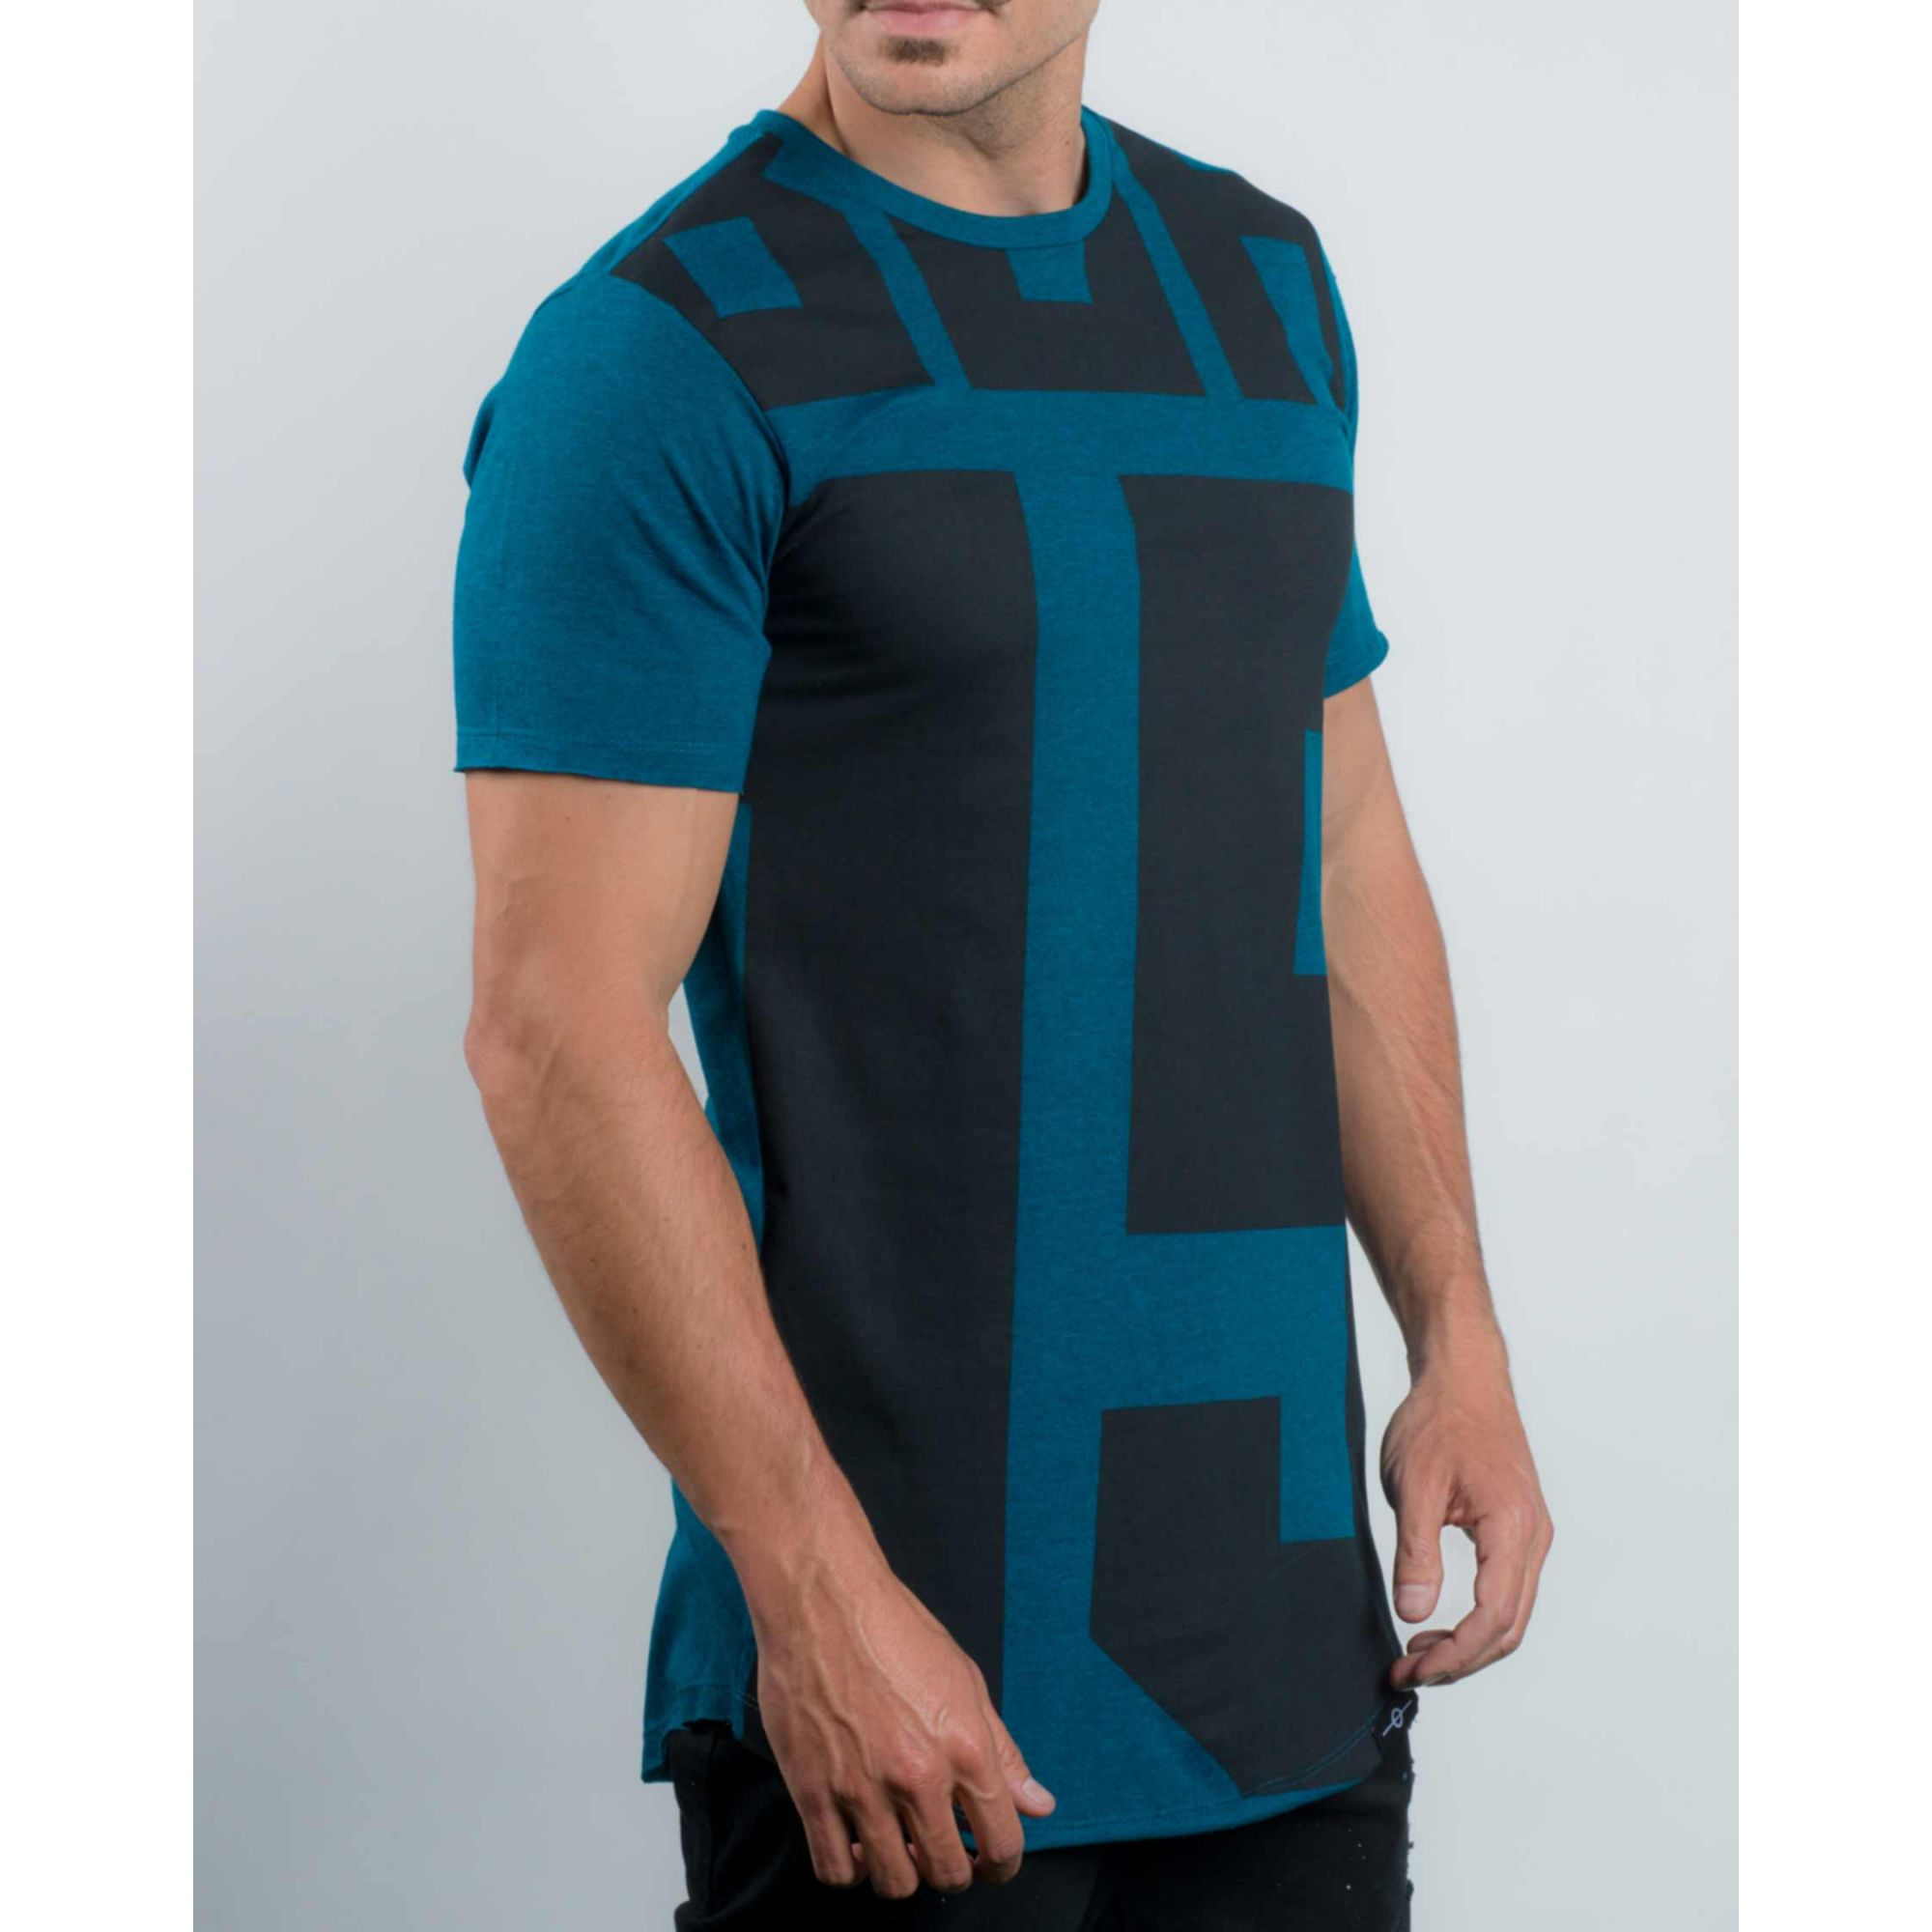 Camiseta Buh 15 Zíper Blue & Black